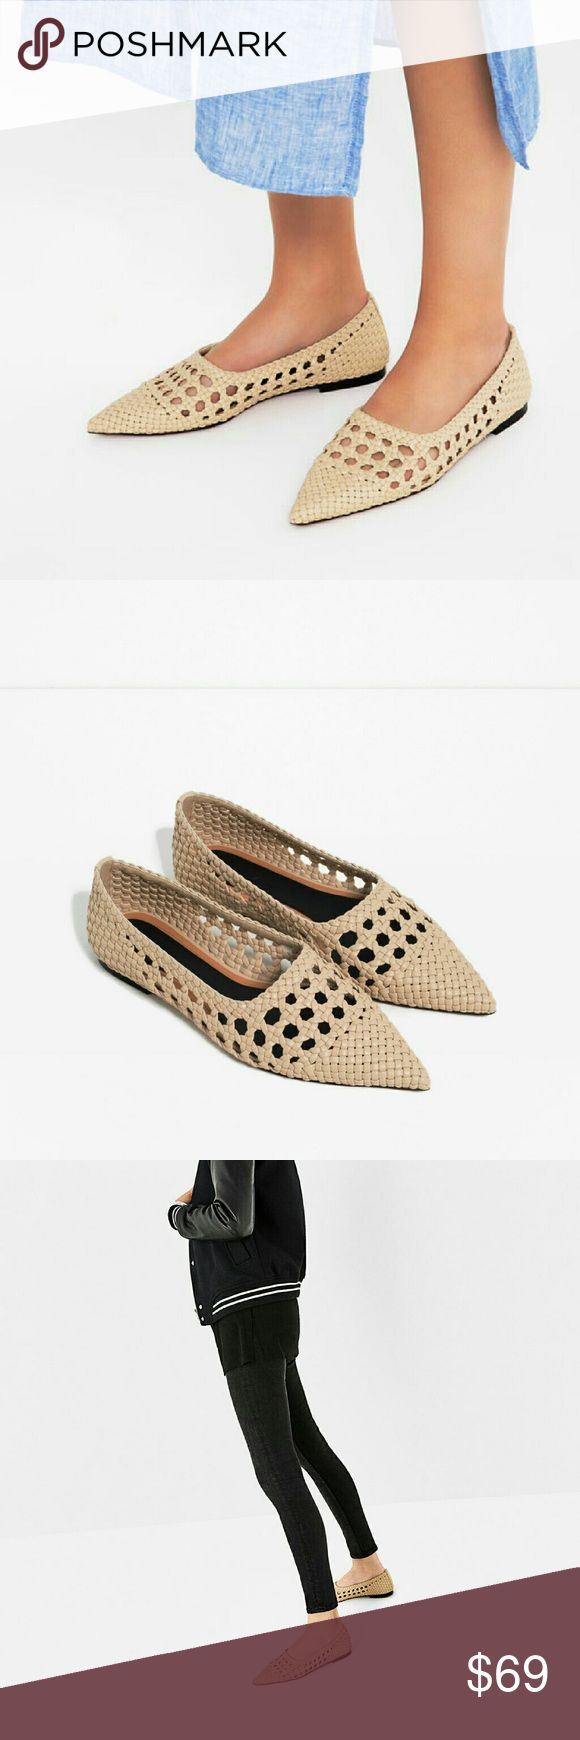 Zara shoes (7259) New with tag. EUR 39/40 US 8/9. UPPER 100% polyurethane  SOLE 100% acrylonitrile butadiene styrene  SLIPSOLE 100% polyurethane  Flat ecru shoes . Braided effect detail and pointed finish . Due to the handmade nature of the braiding and the pointed effect , the shoe's design may vary  Sole height 1 cm Zara Shoes Flats & Loafers